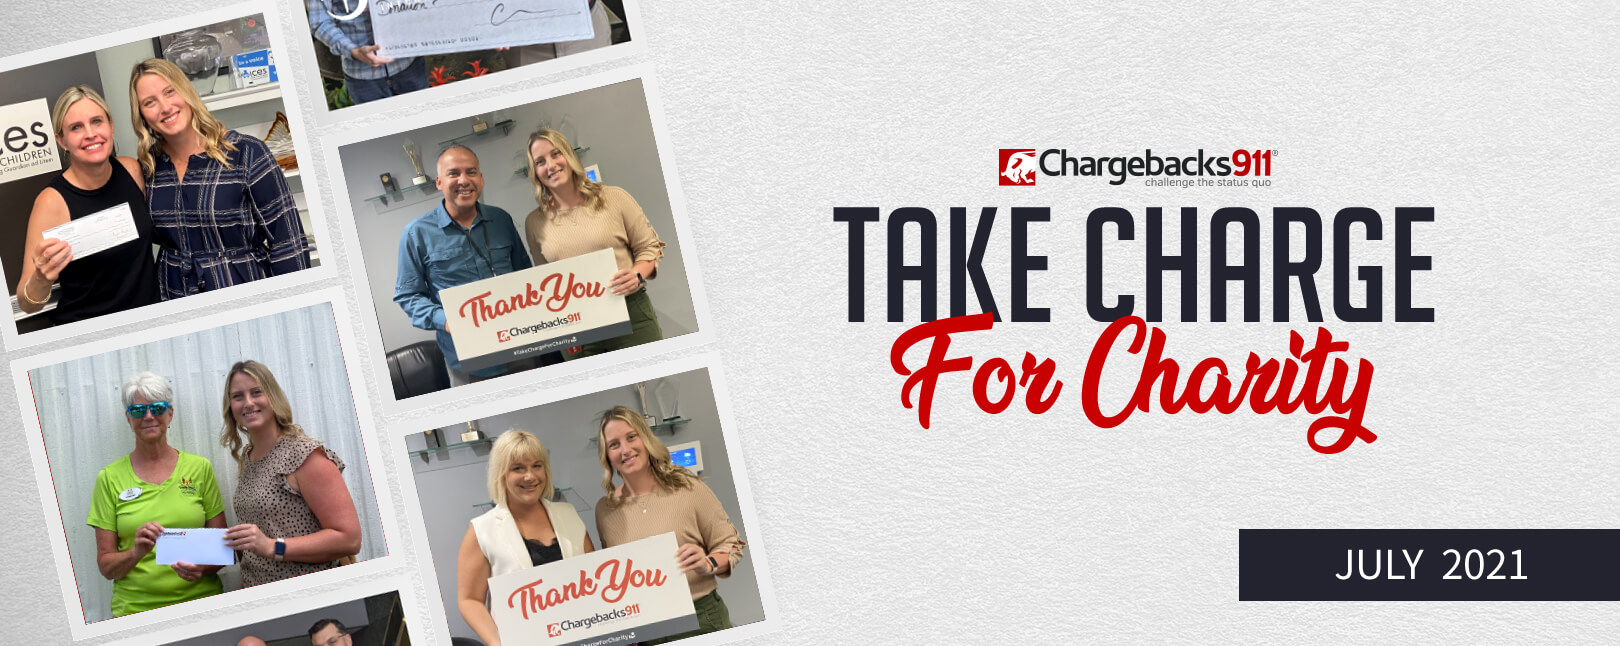 Take Charge for Charity – July 2021